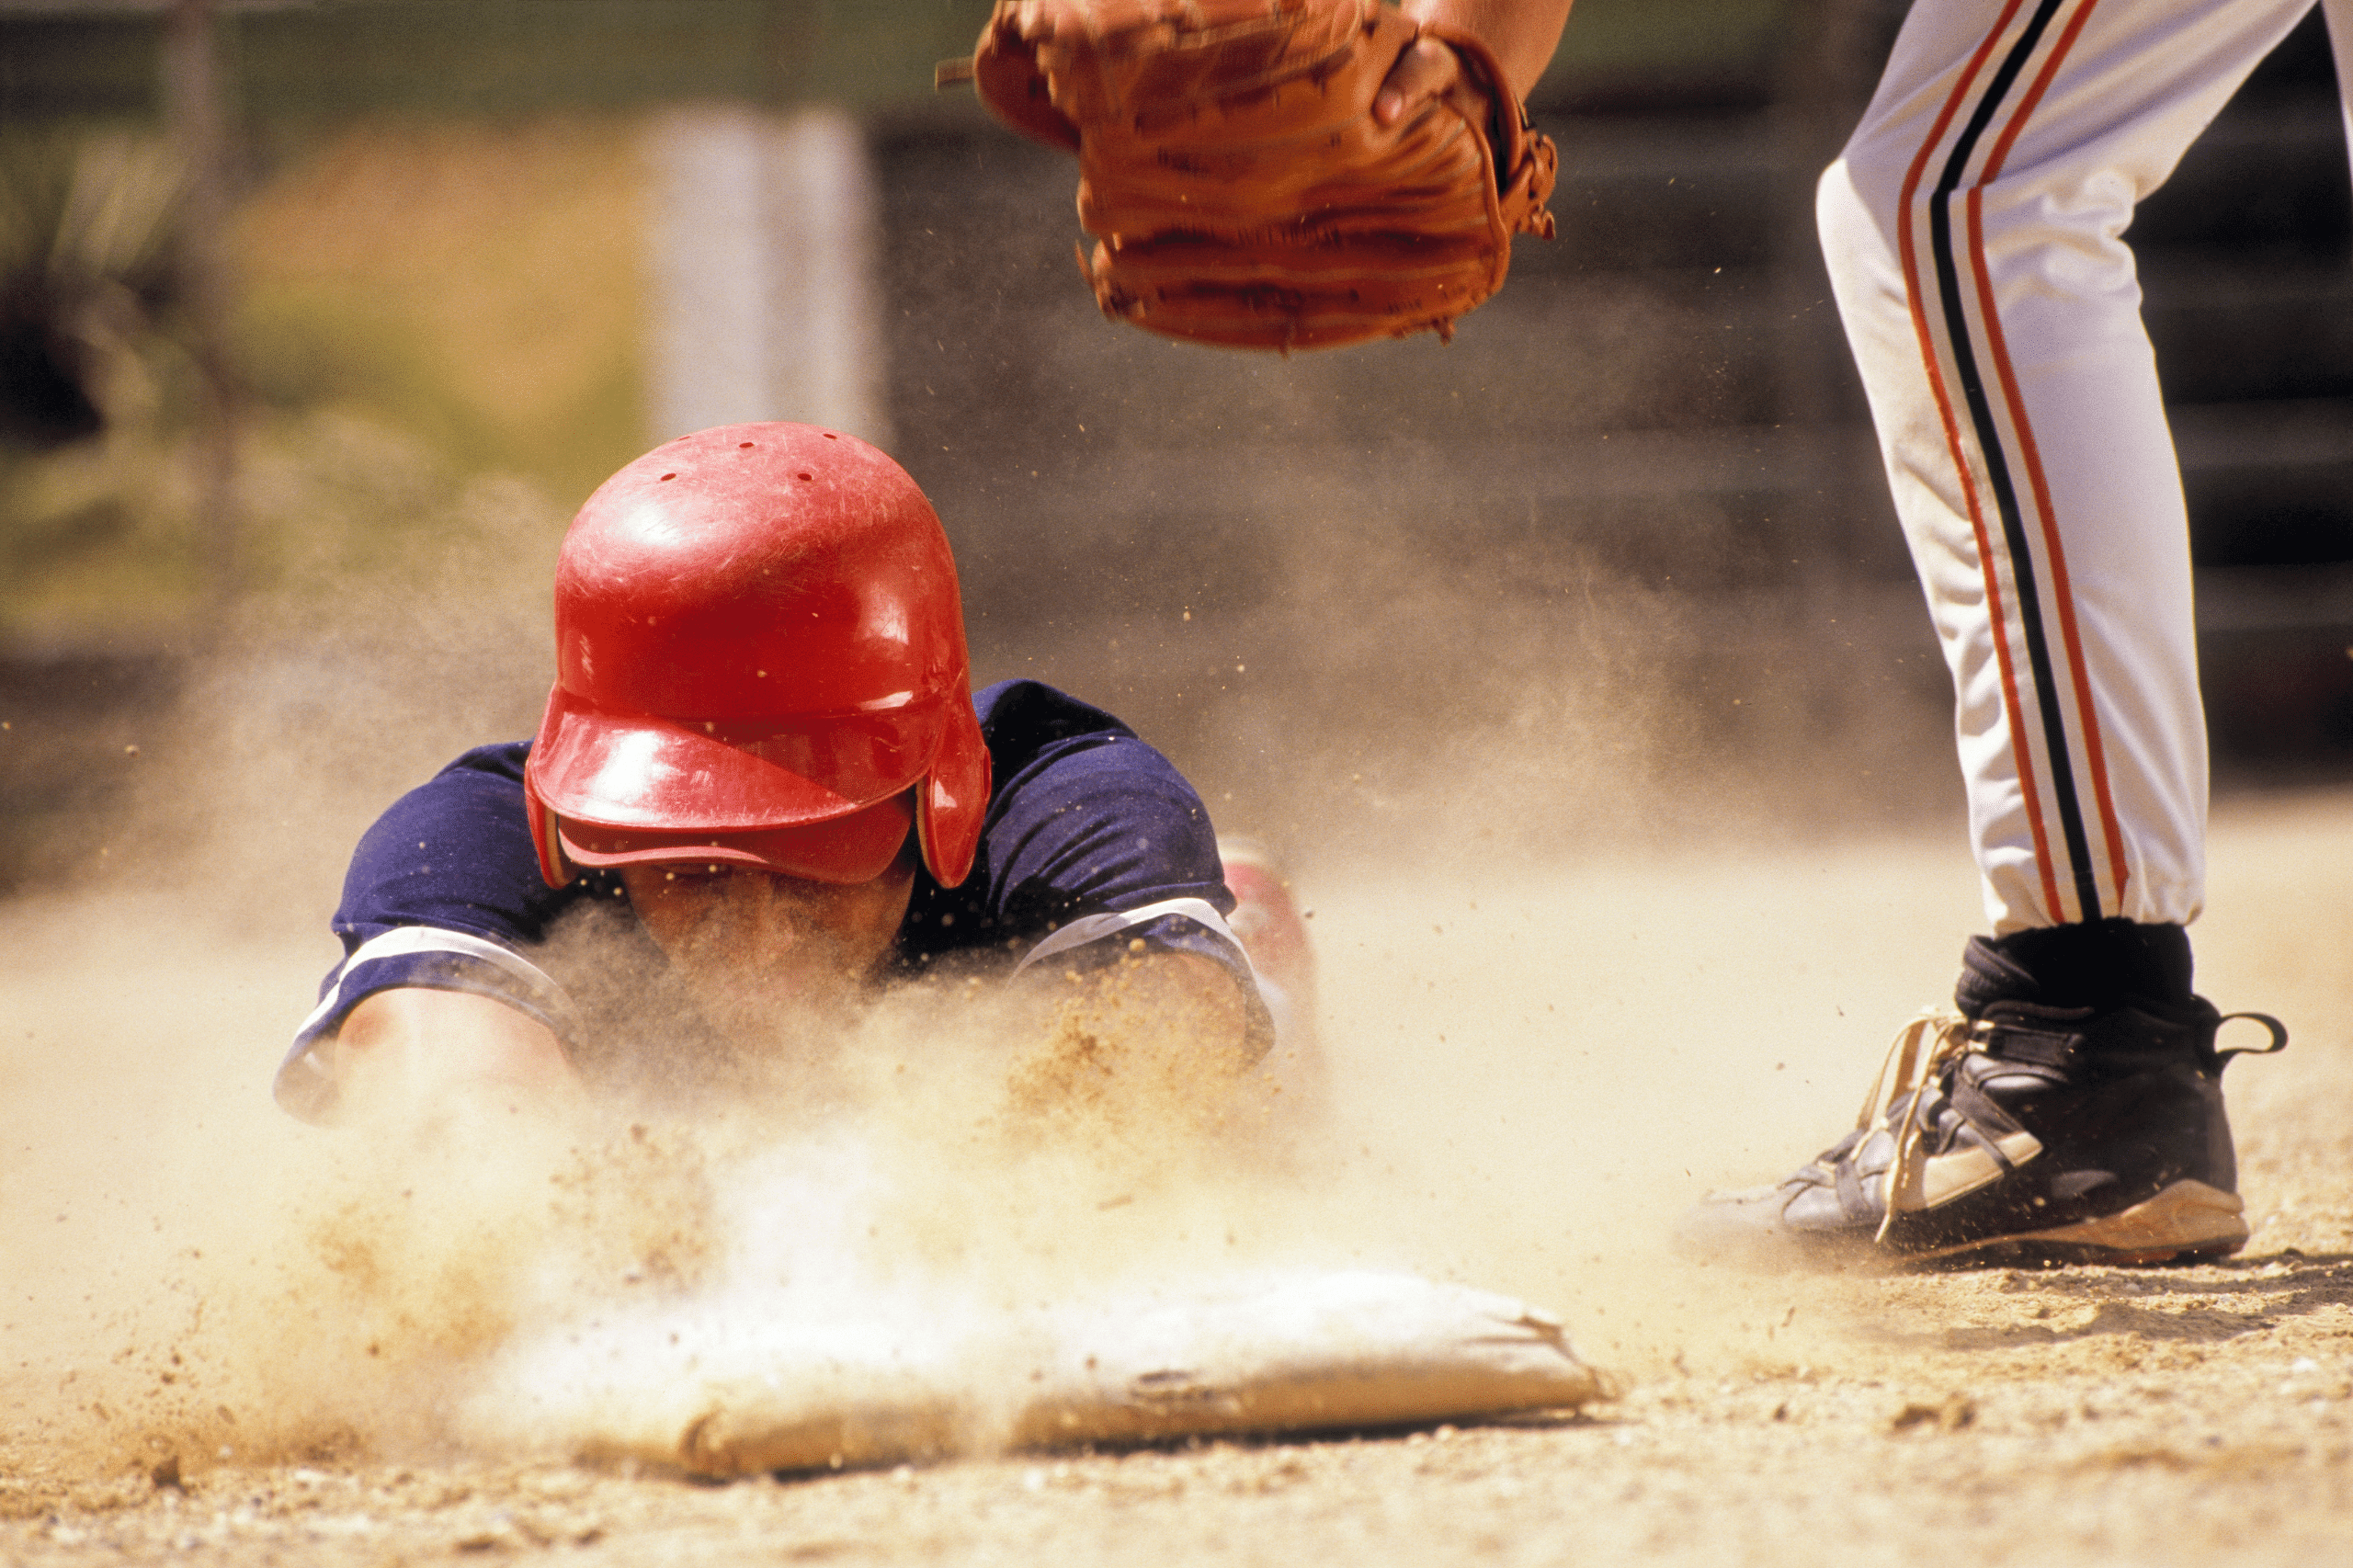 How To Get Better At Baseball By Visualizing Yourself Being Successful